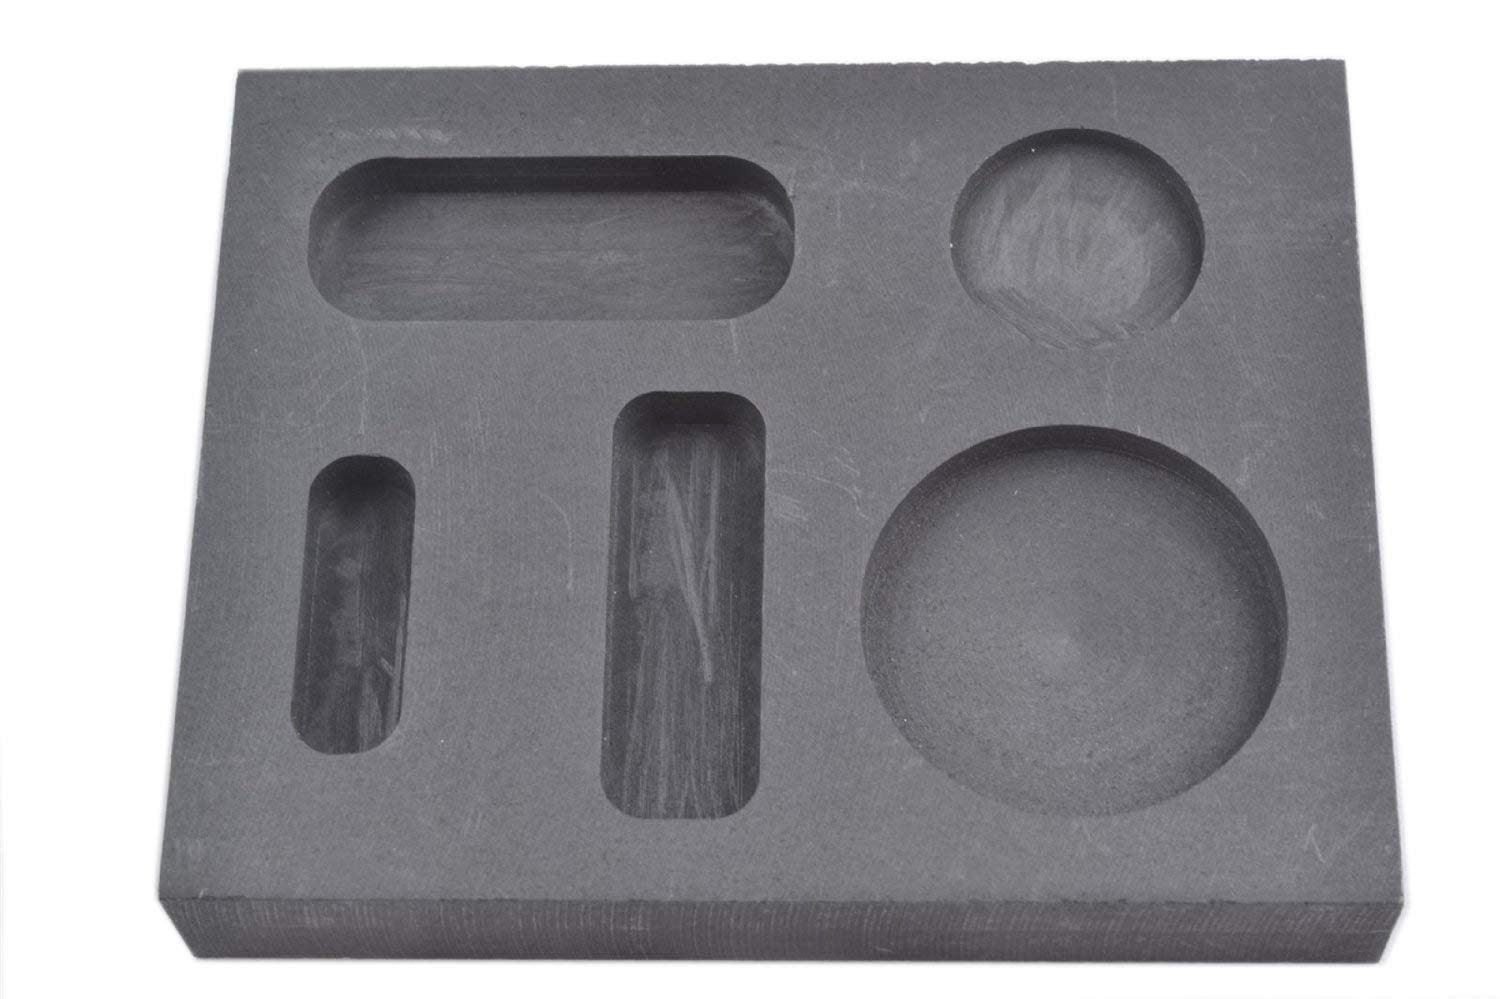 OTOOLWORLD Graphite Ingot Mold 1/4 1/2 1 Ounce Gold Melting Casting Refining also silver with Bar Coin Combo mould Combo.1